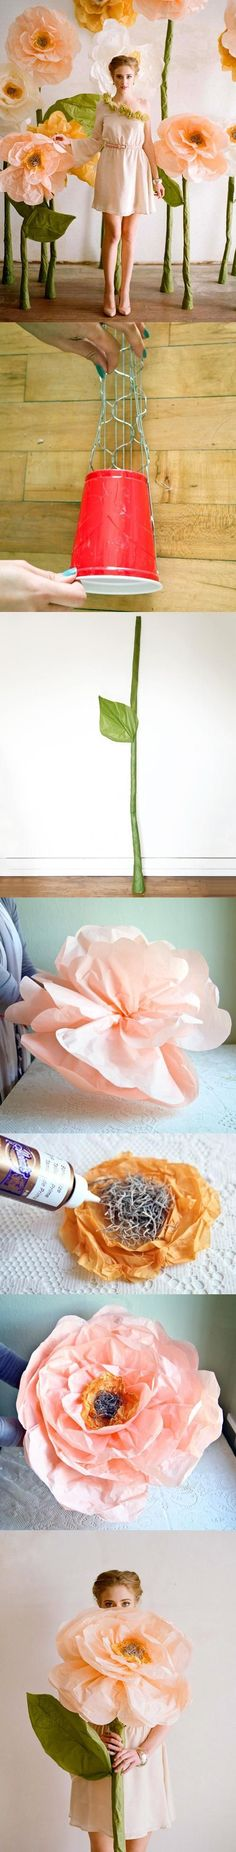 stalagmite technique?  could vary the size, but tissue paper is so much cheaper than the spray foam.  Not necessarily flowers but something else in giant size? - Giant Tissue Flower | Tutorial (some steps):